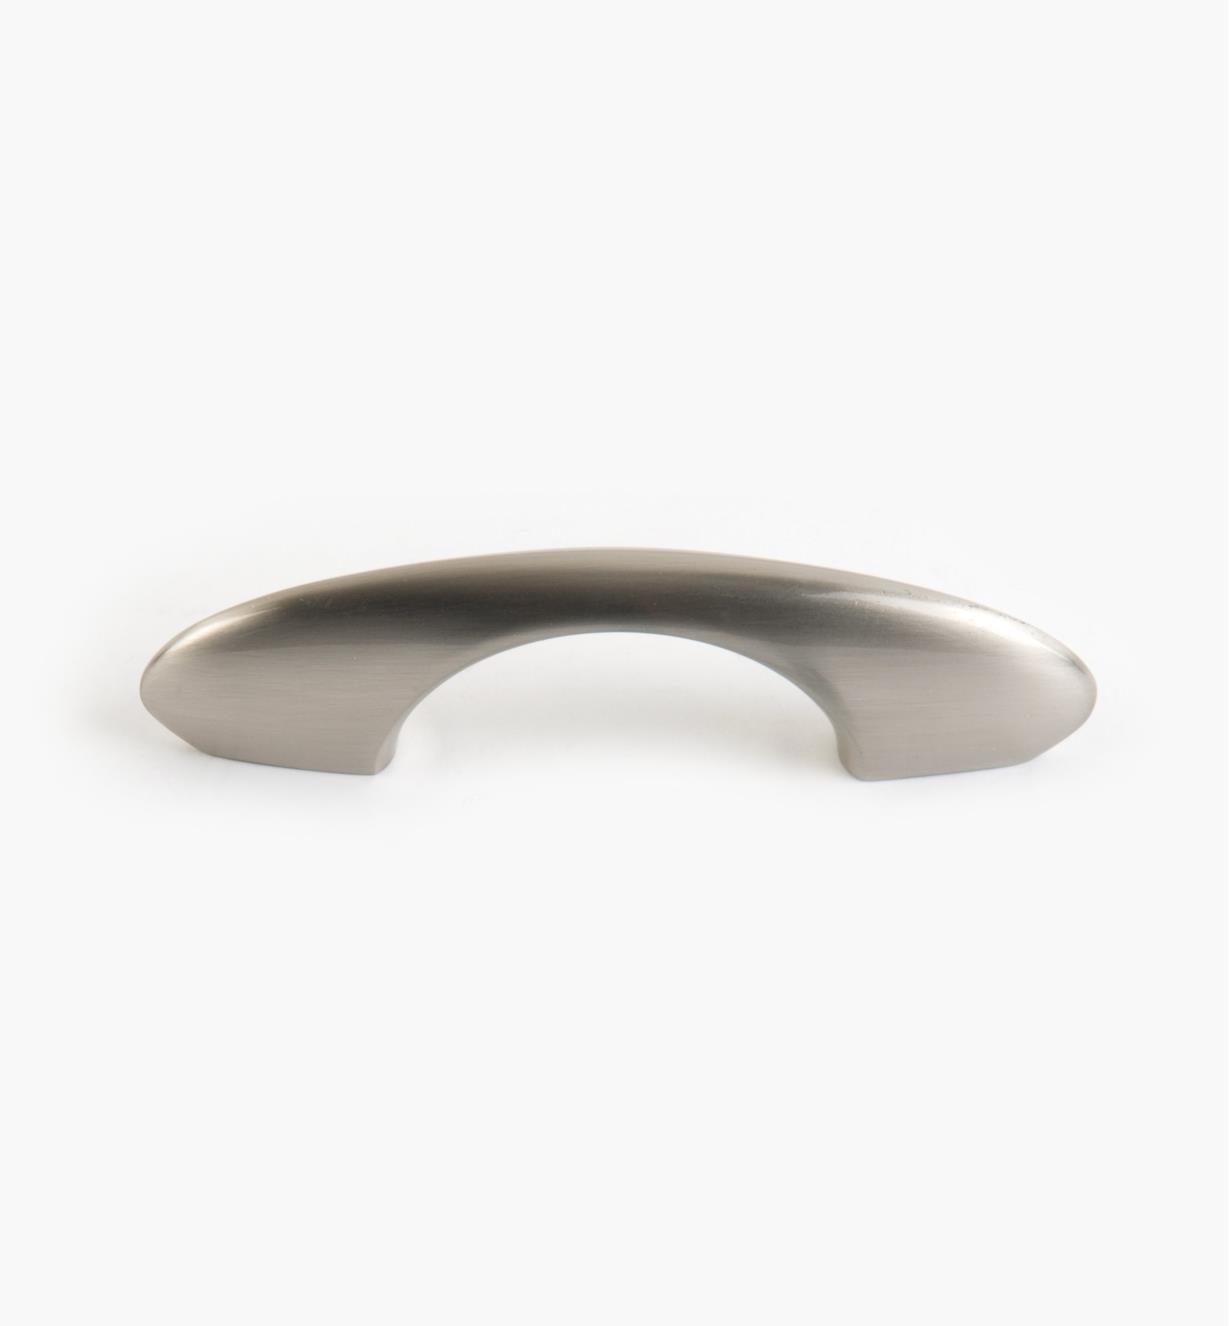 01G1461 - 64mm x 27mm Brushed Nickel Halo Handle